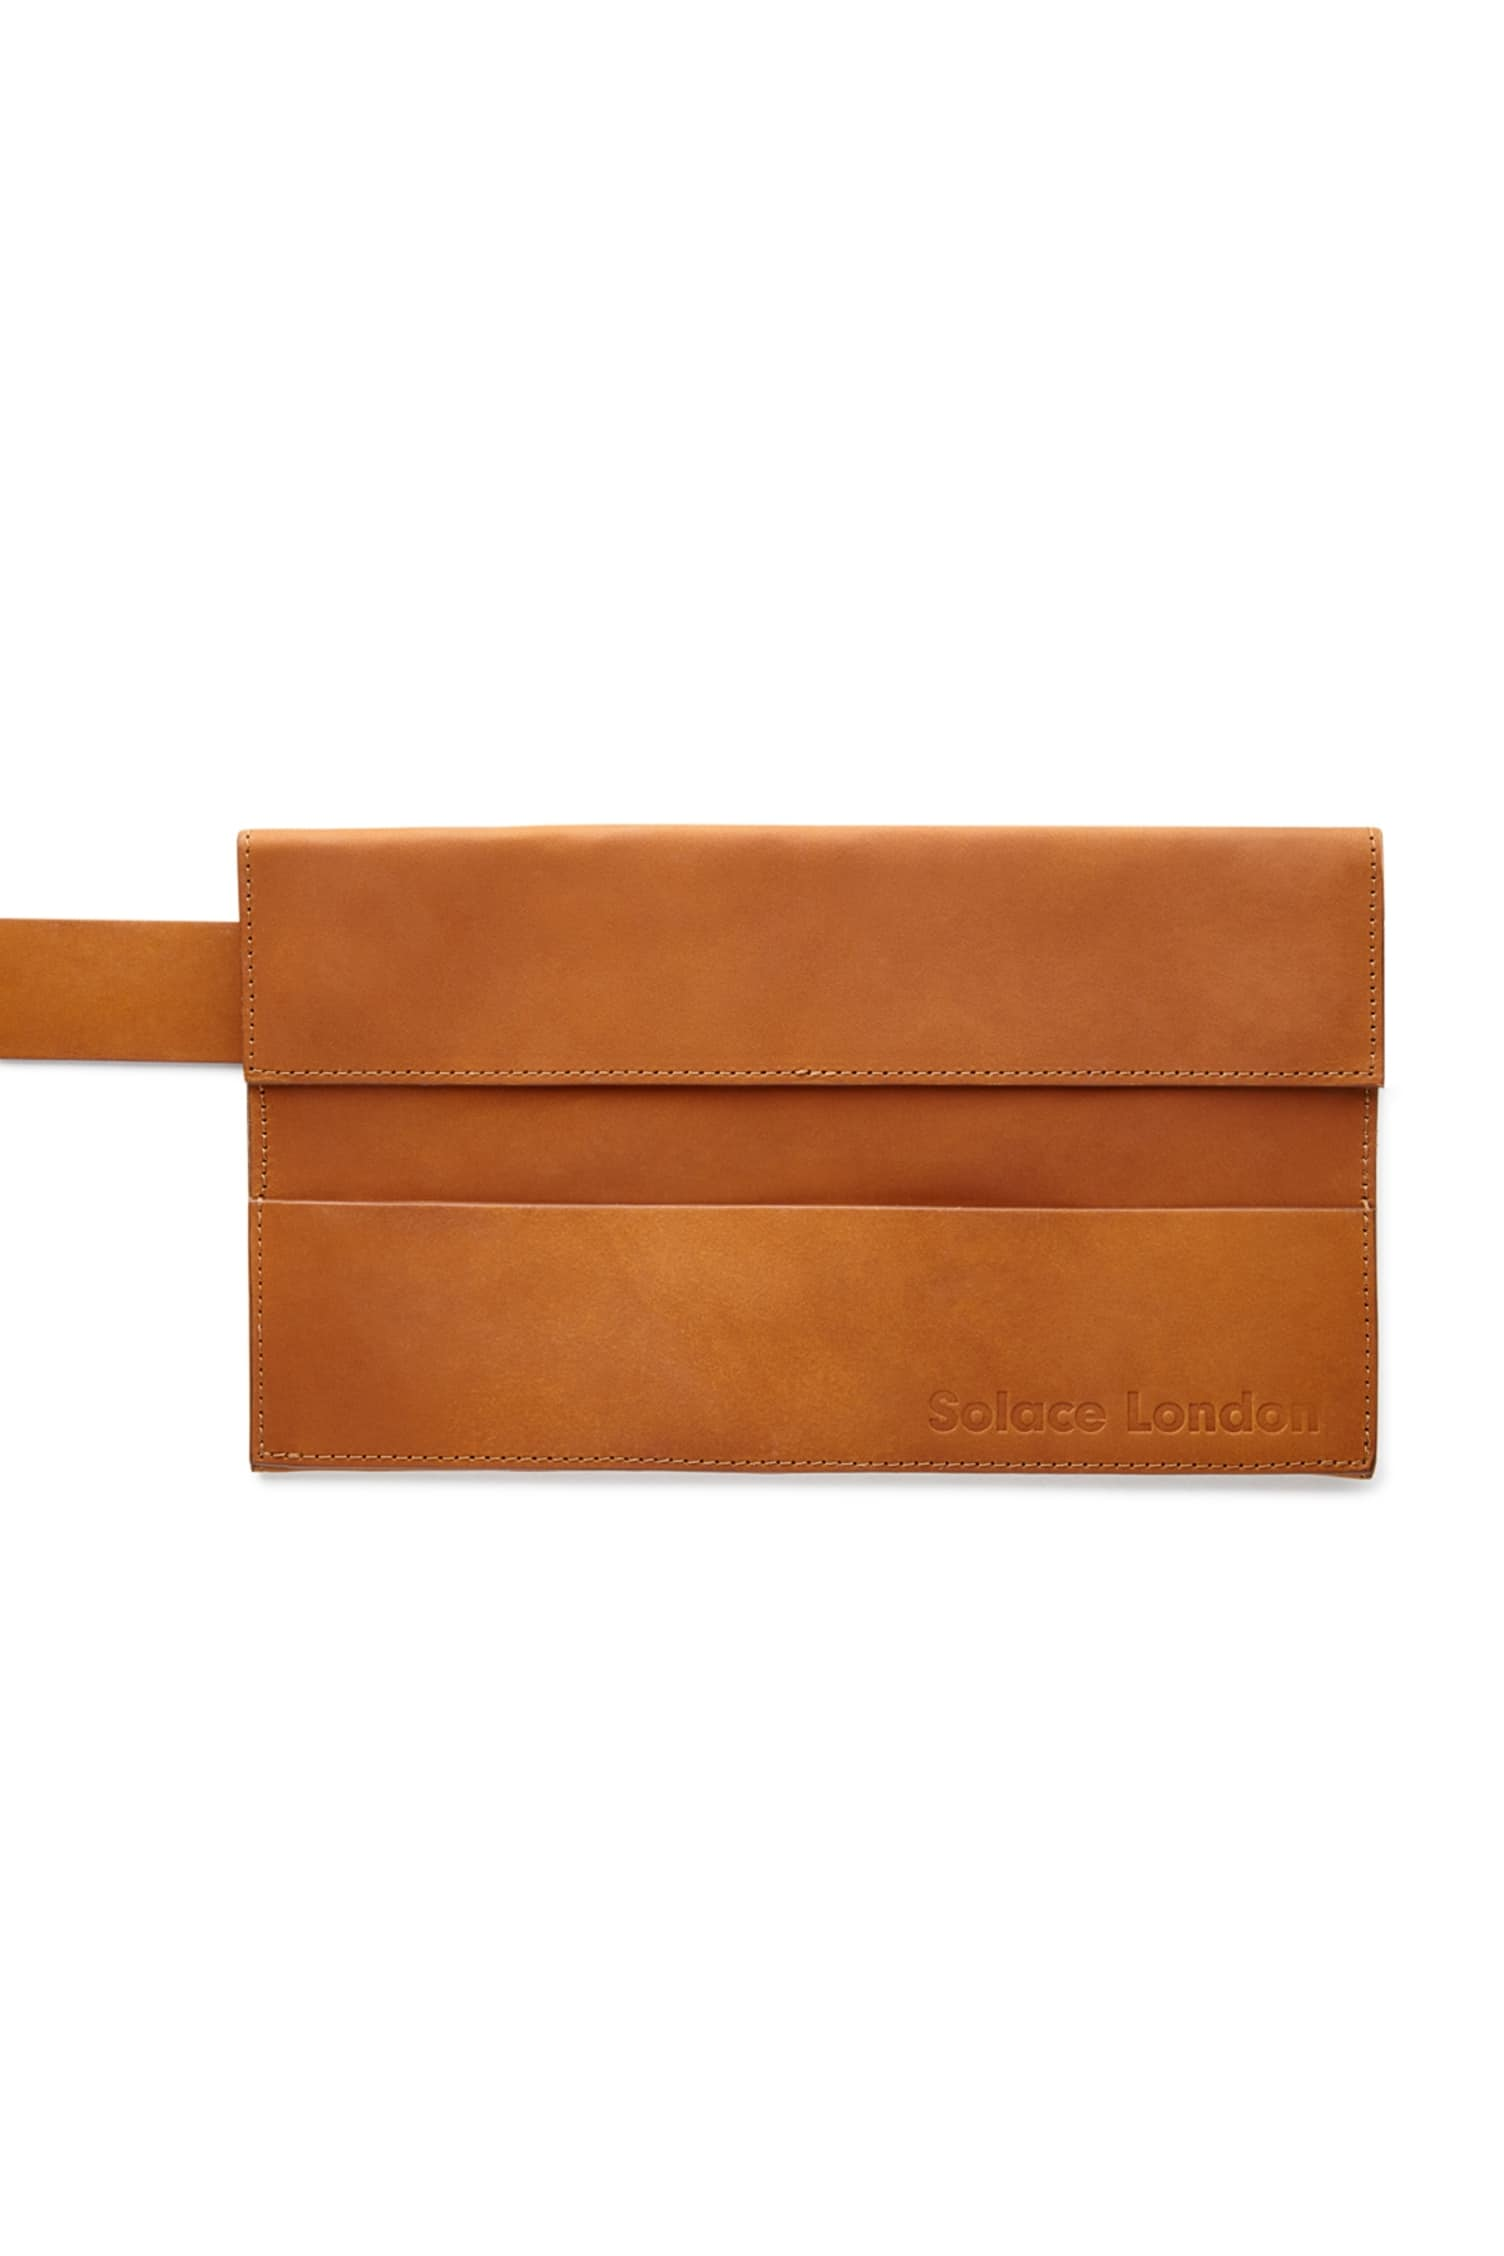 Sutton Envelope Belt Bag Tan